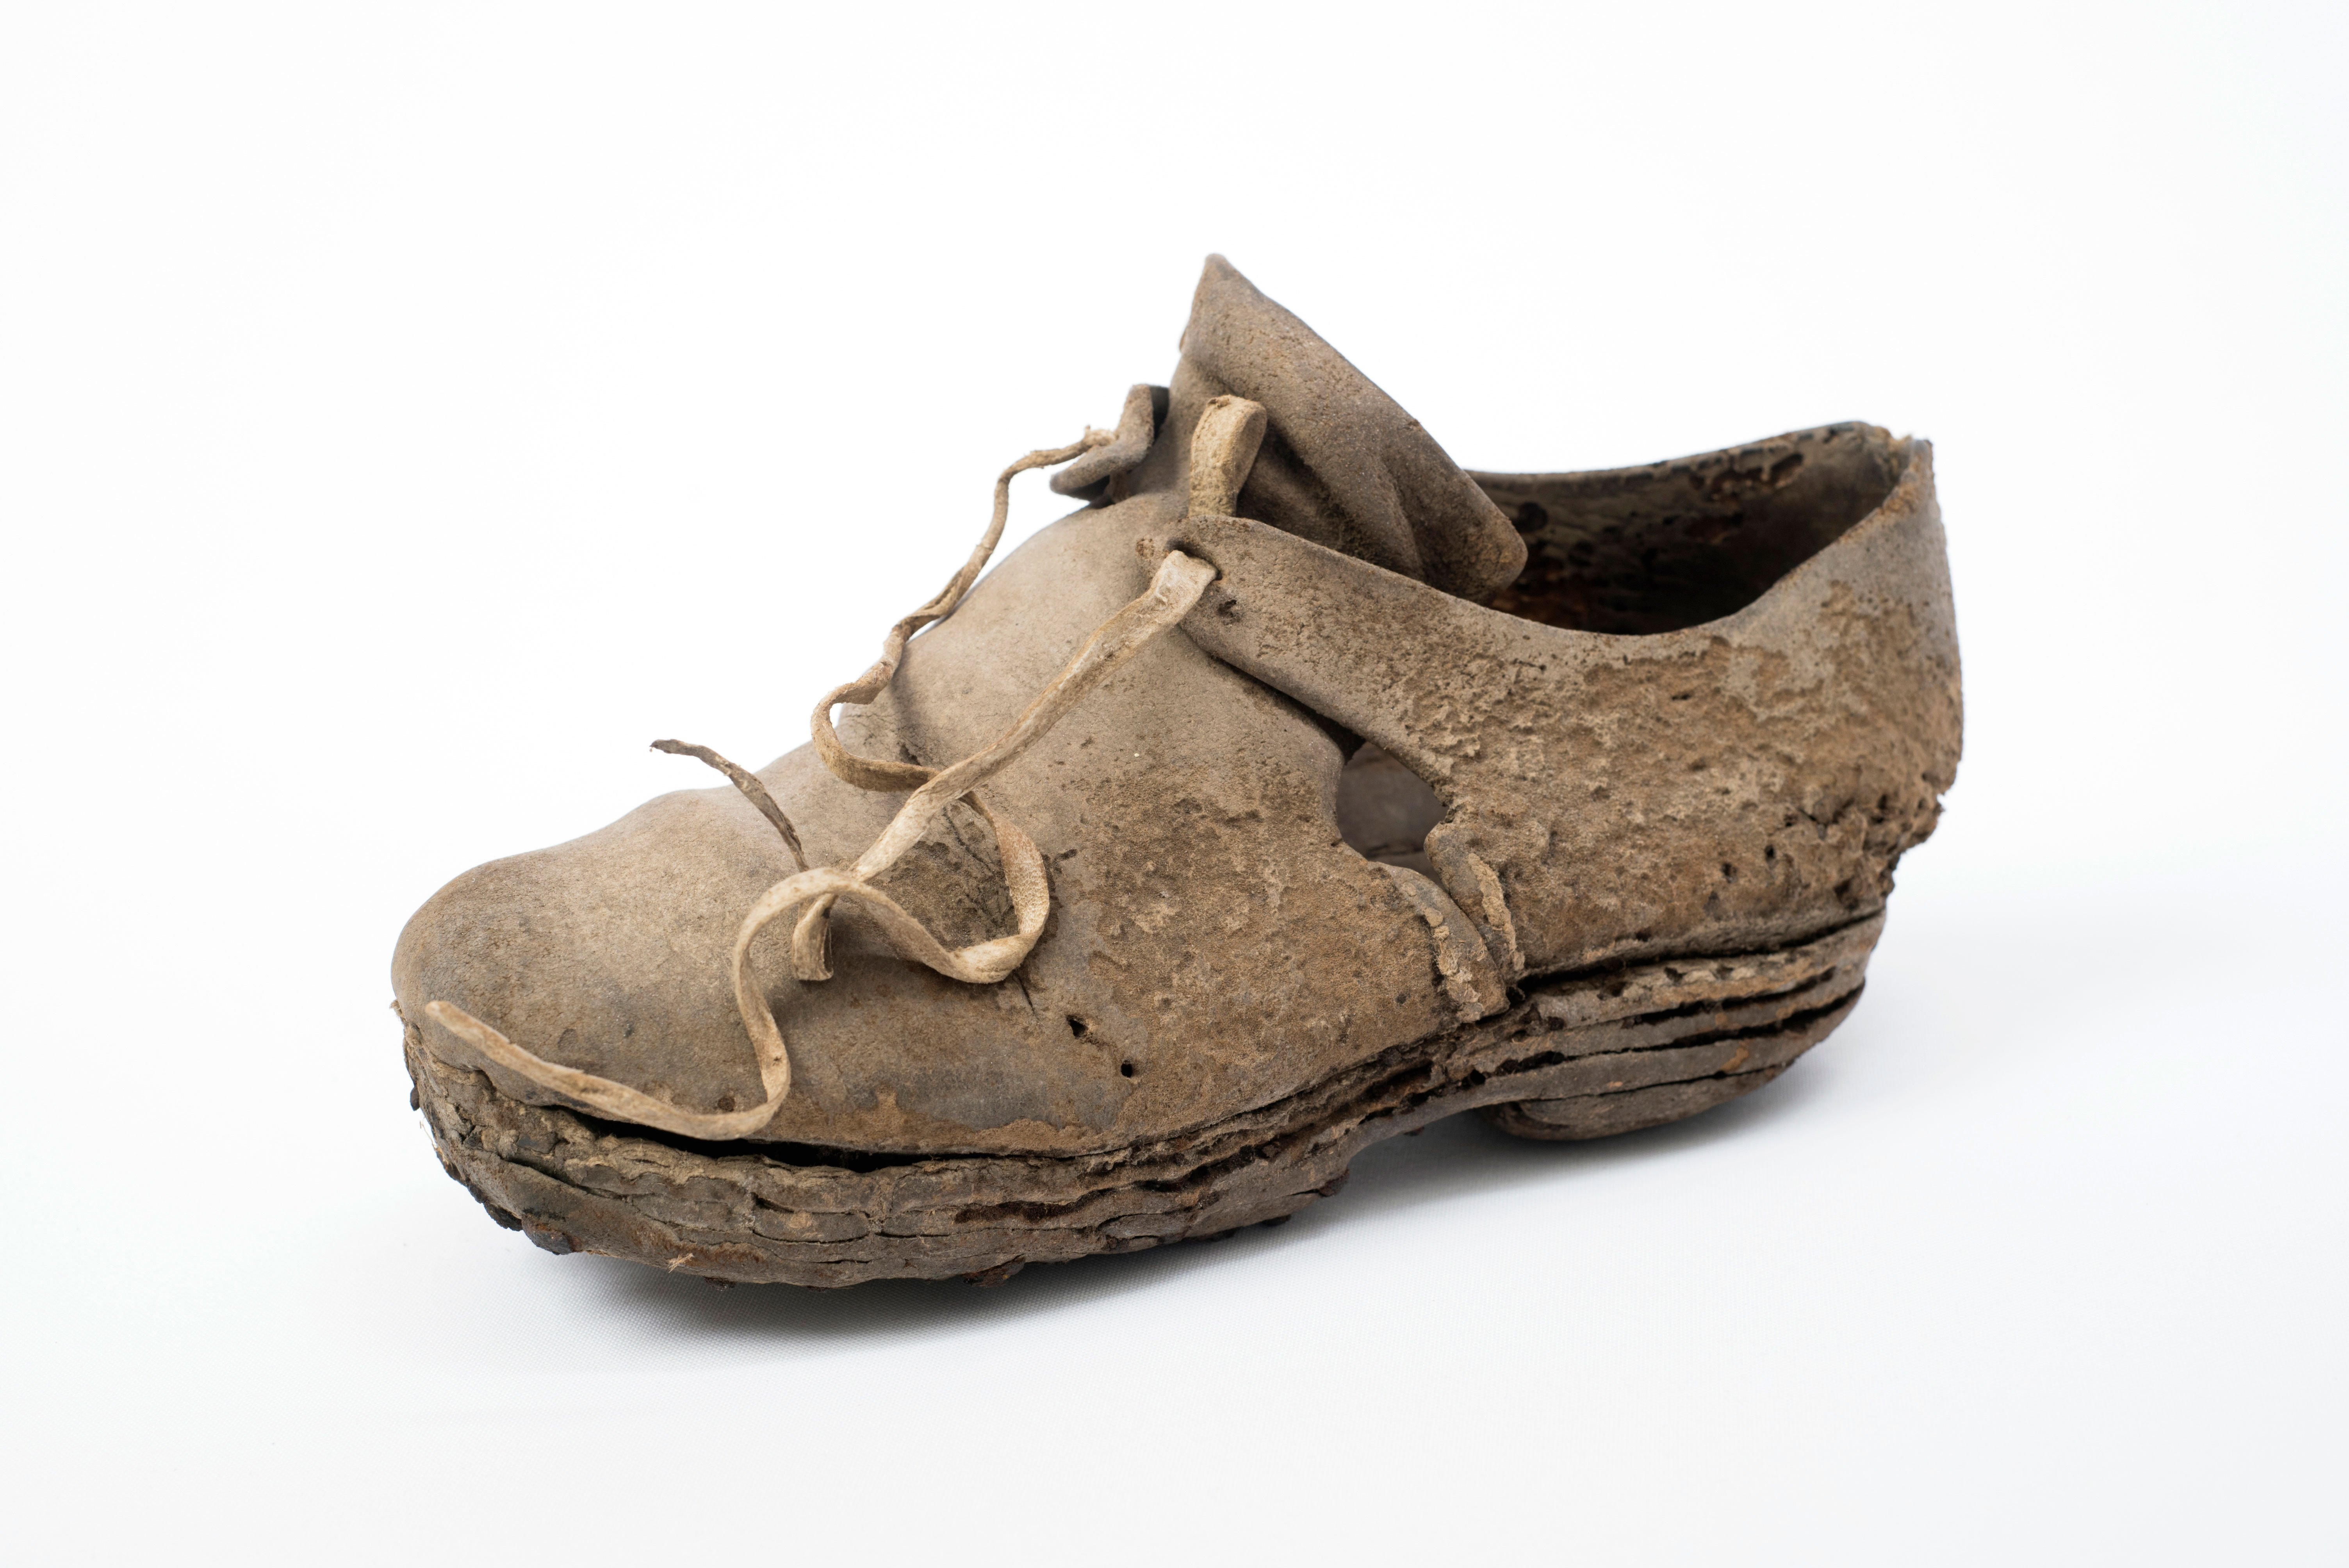 Leather Shoe – East Grinstead Museum